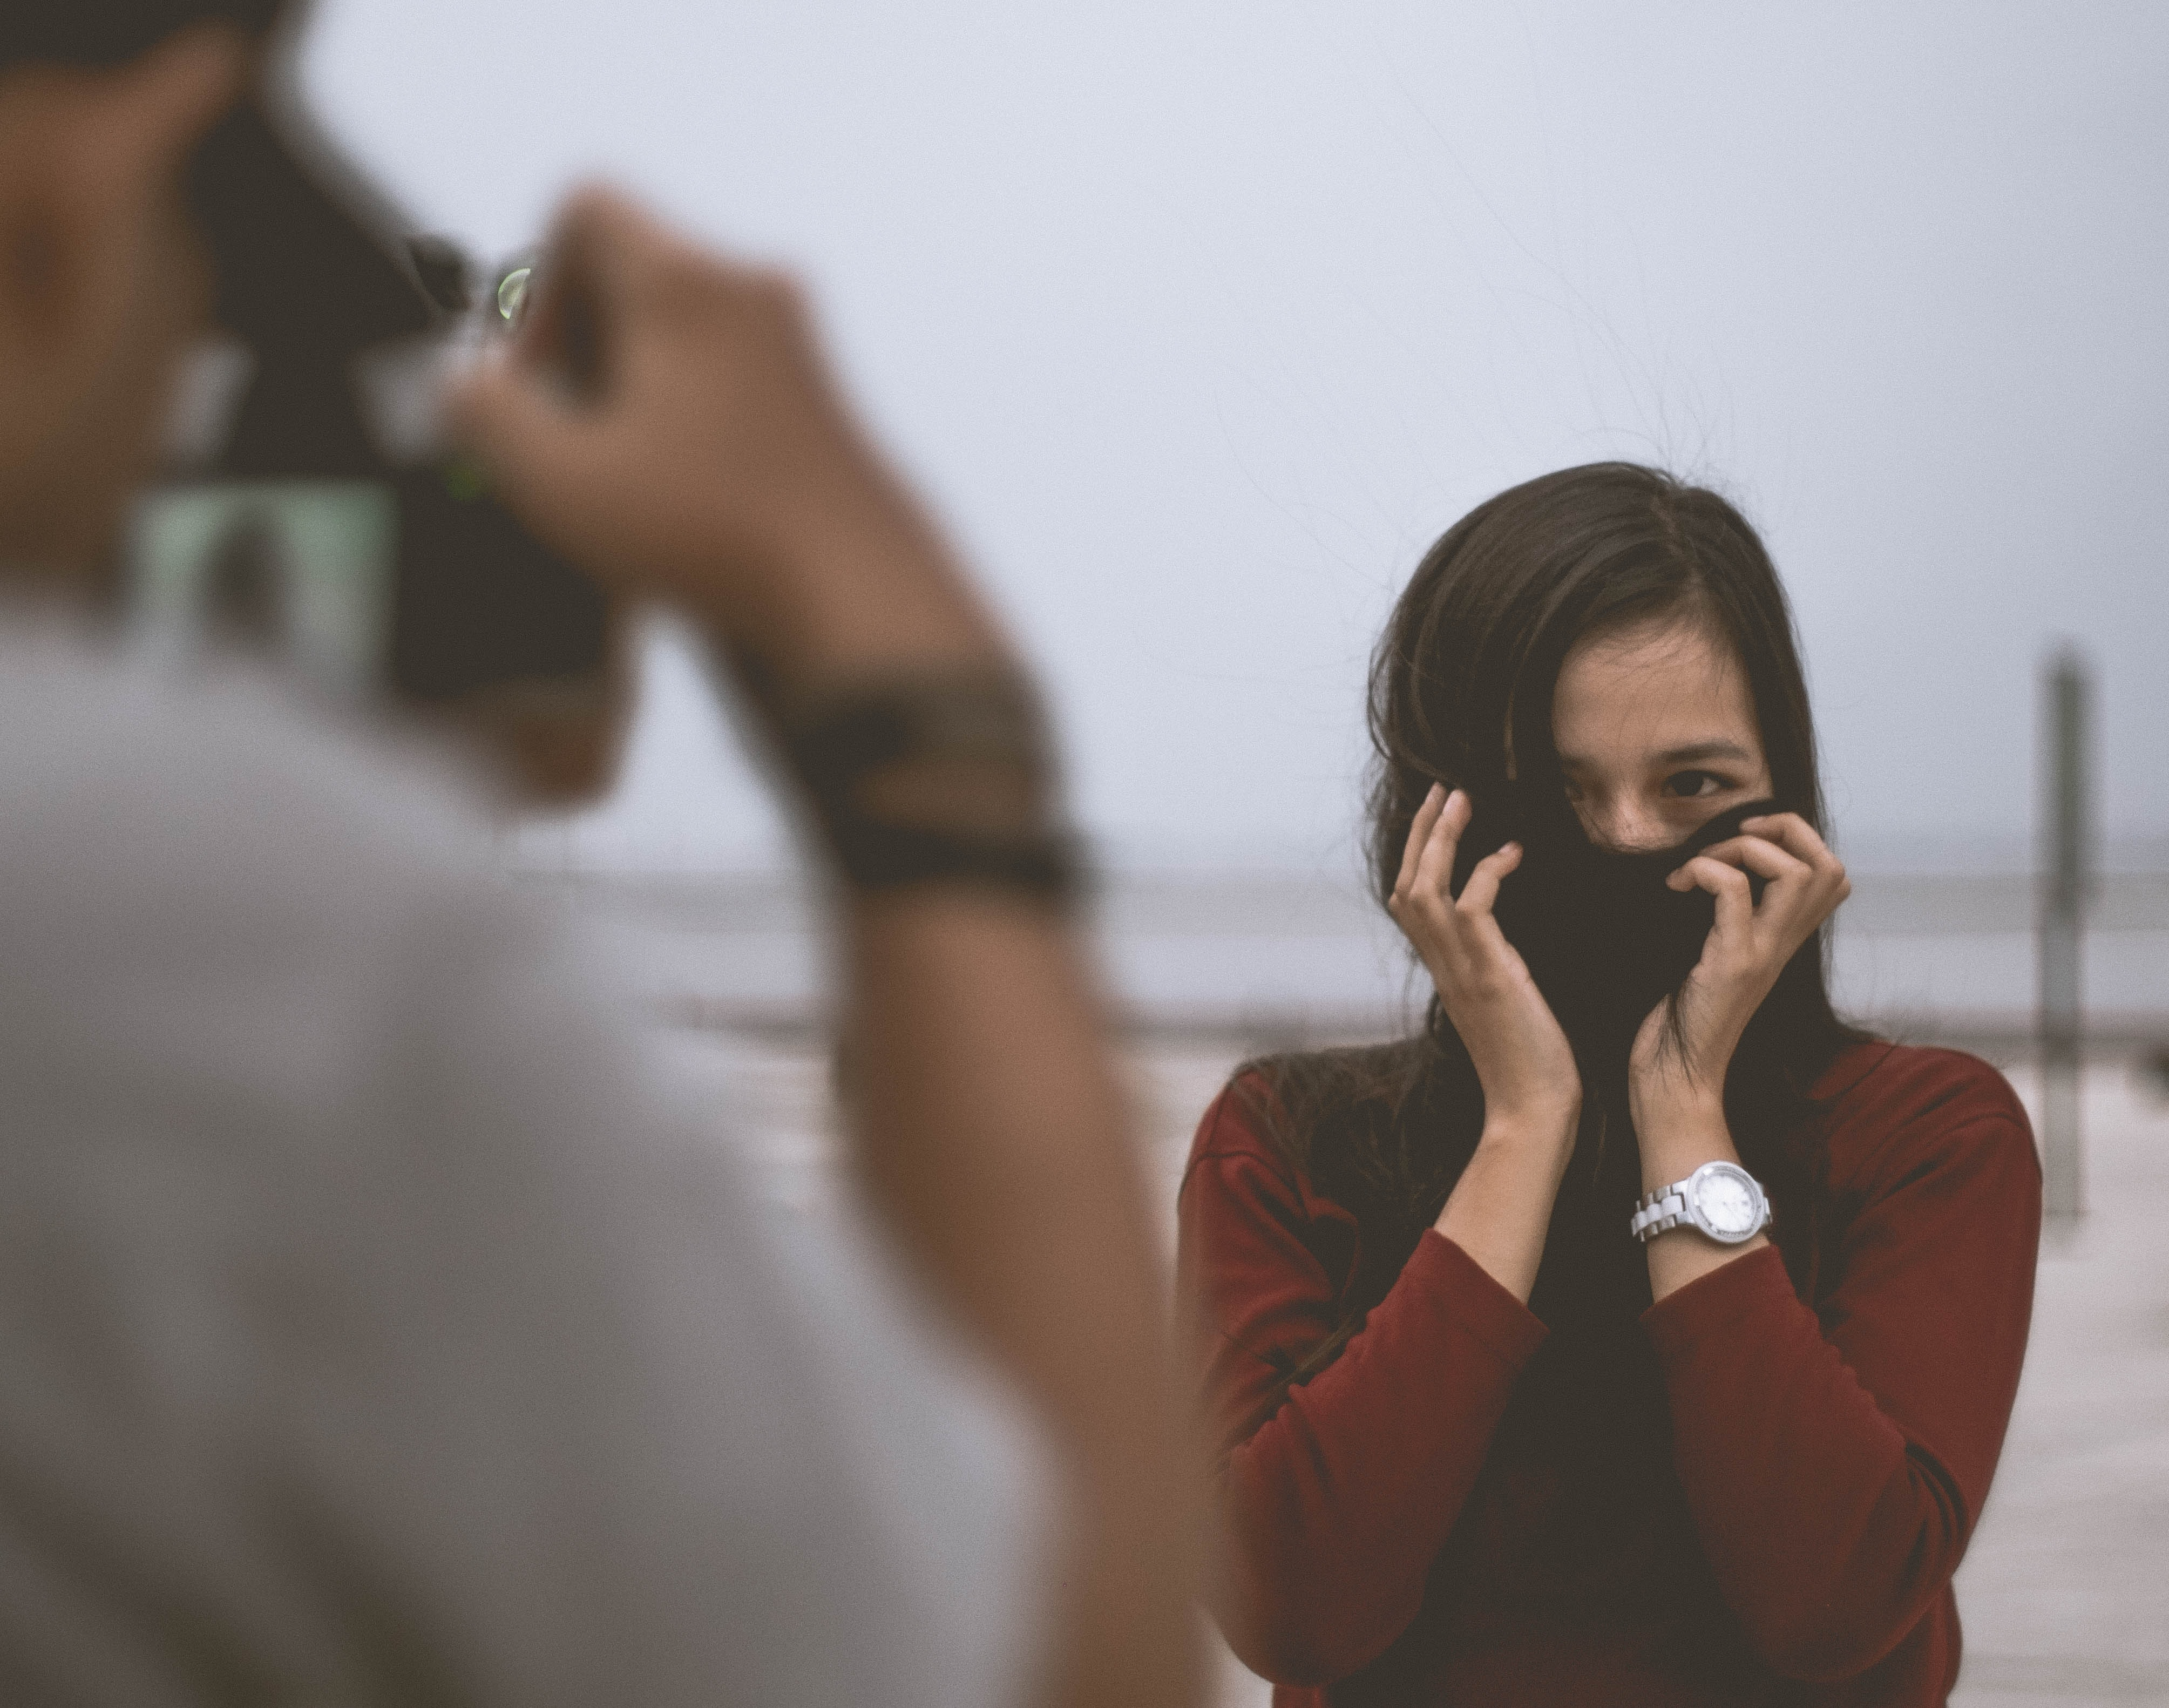 selective focus photography of person wearing white shirt taking photo of woman wearing red long-sleeved shirt covering her face with hair